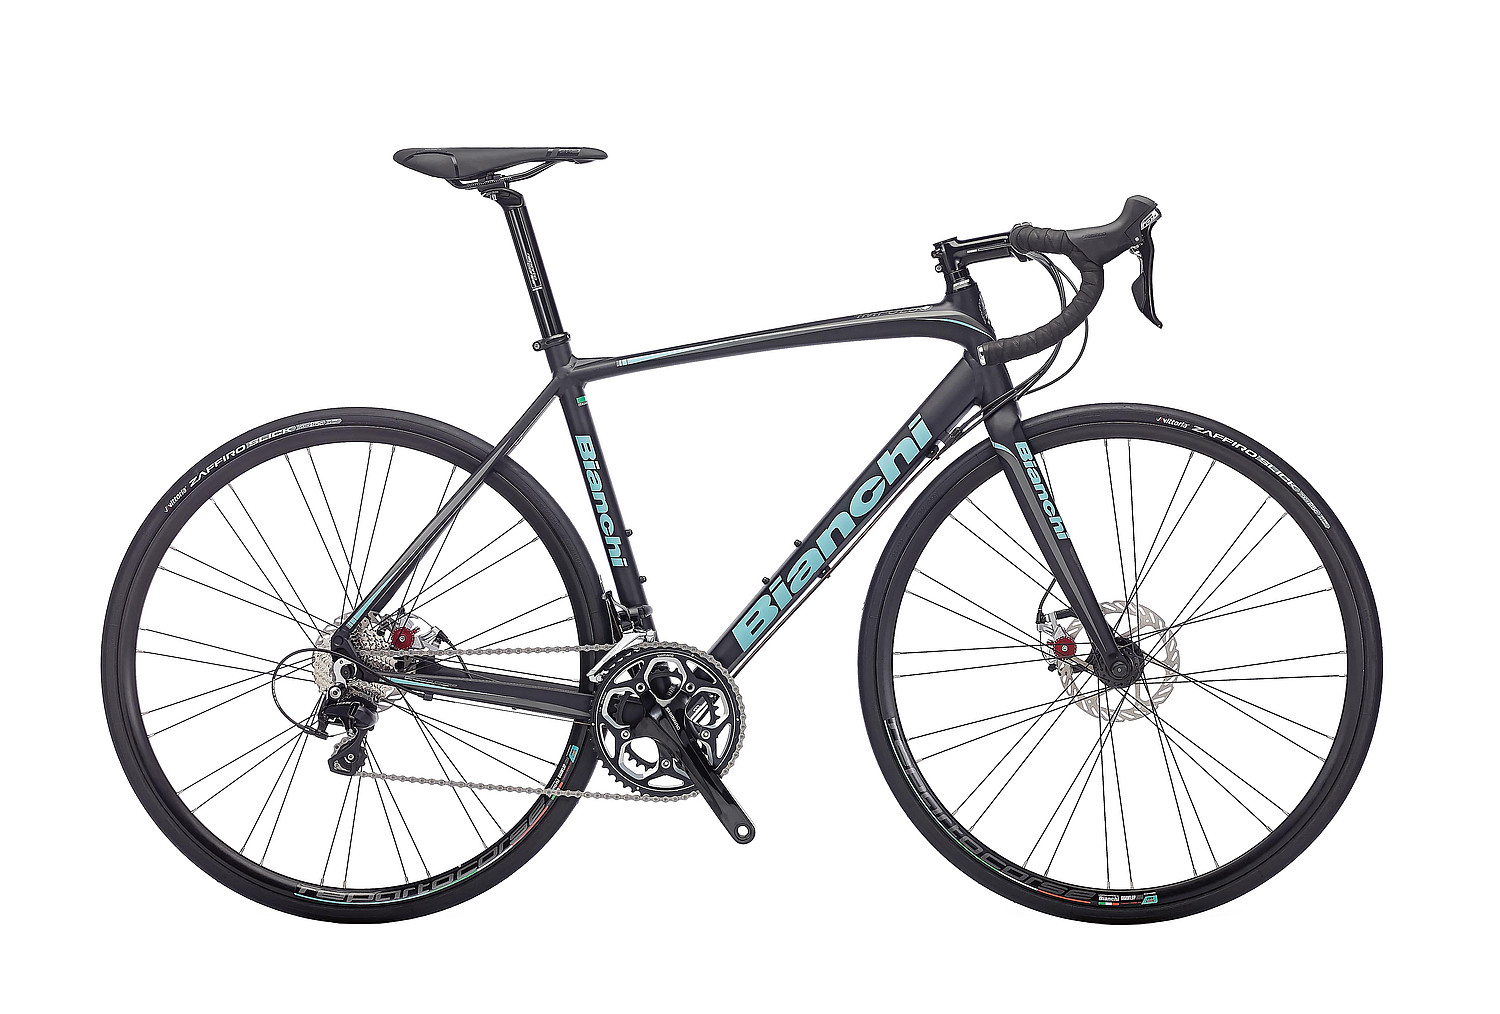 5a9d4dd8 Bianchi Impulso 105 Disc - The Newbury Park Bicycle Shop